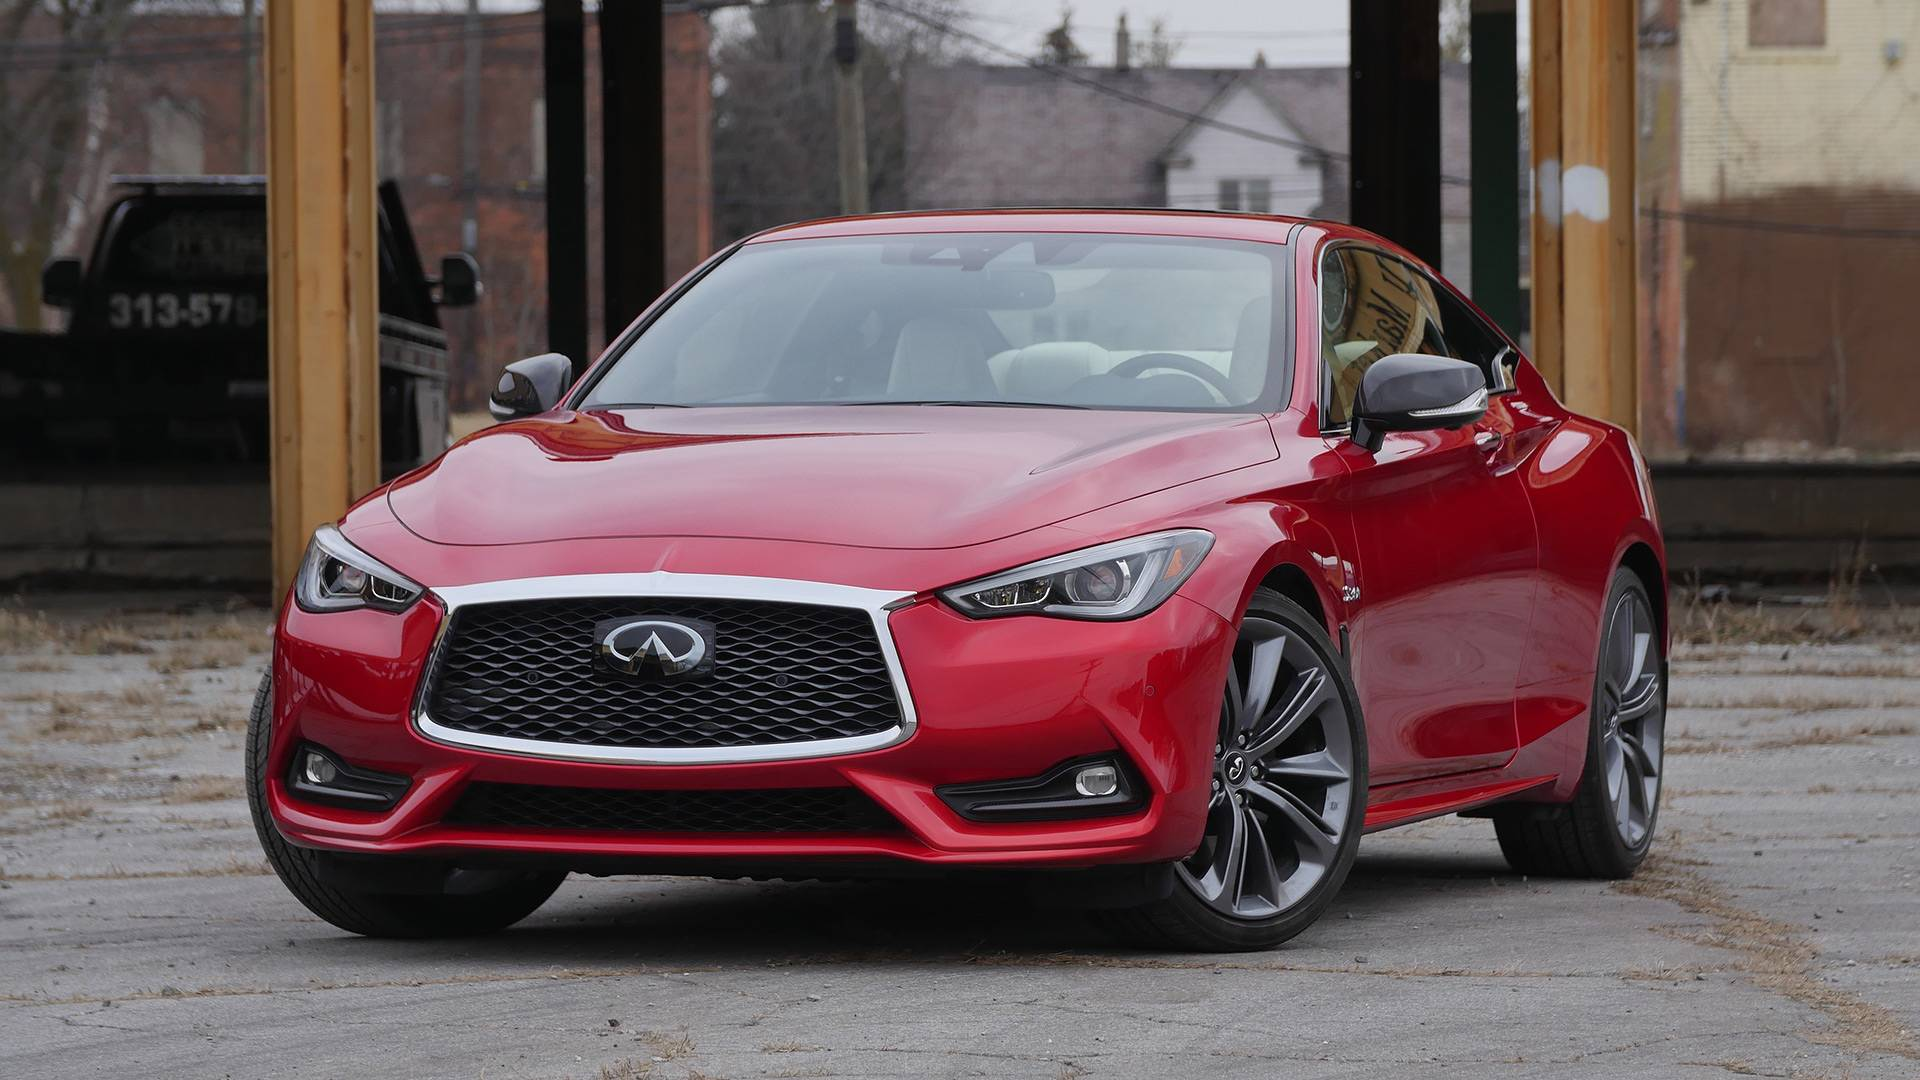 21 All New 2020 Infiniti Q60 Picture